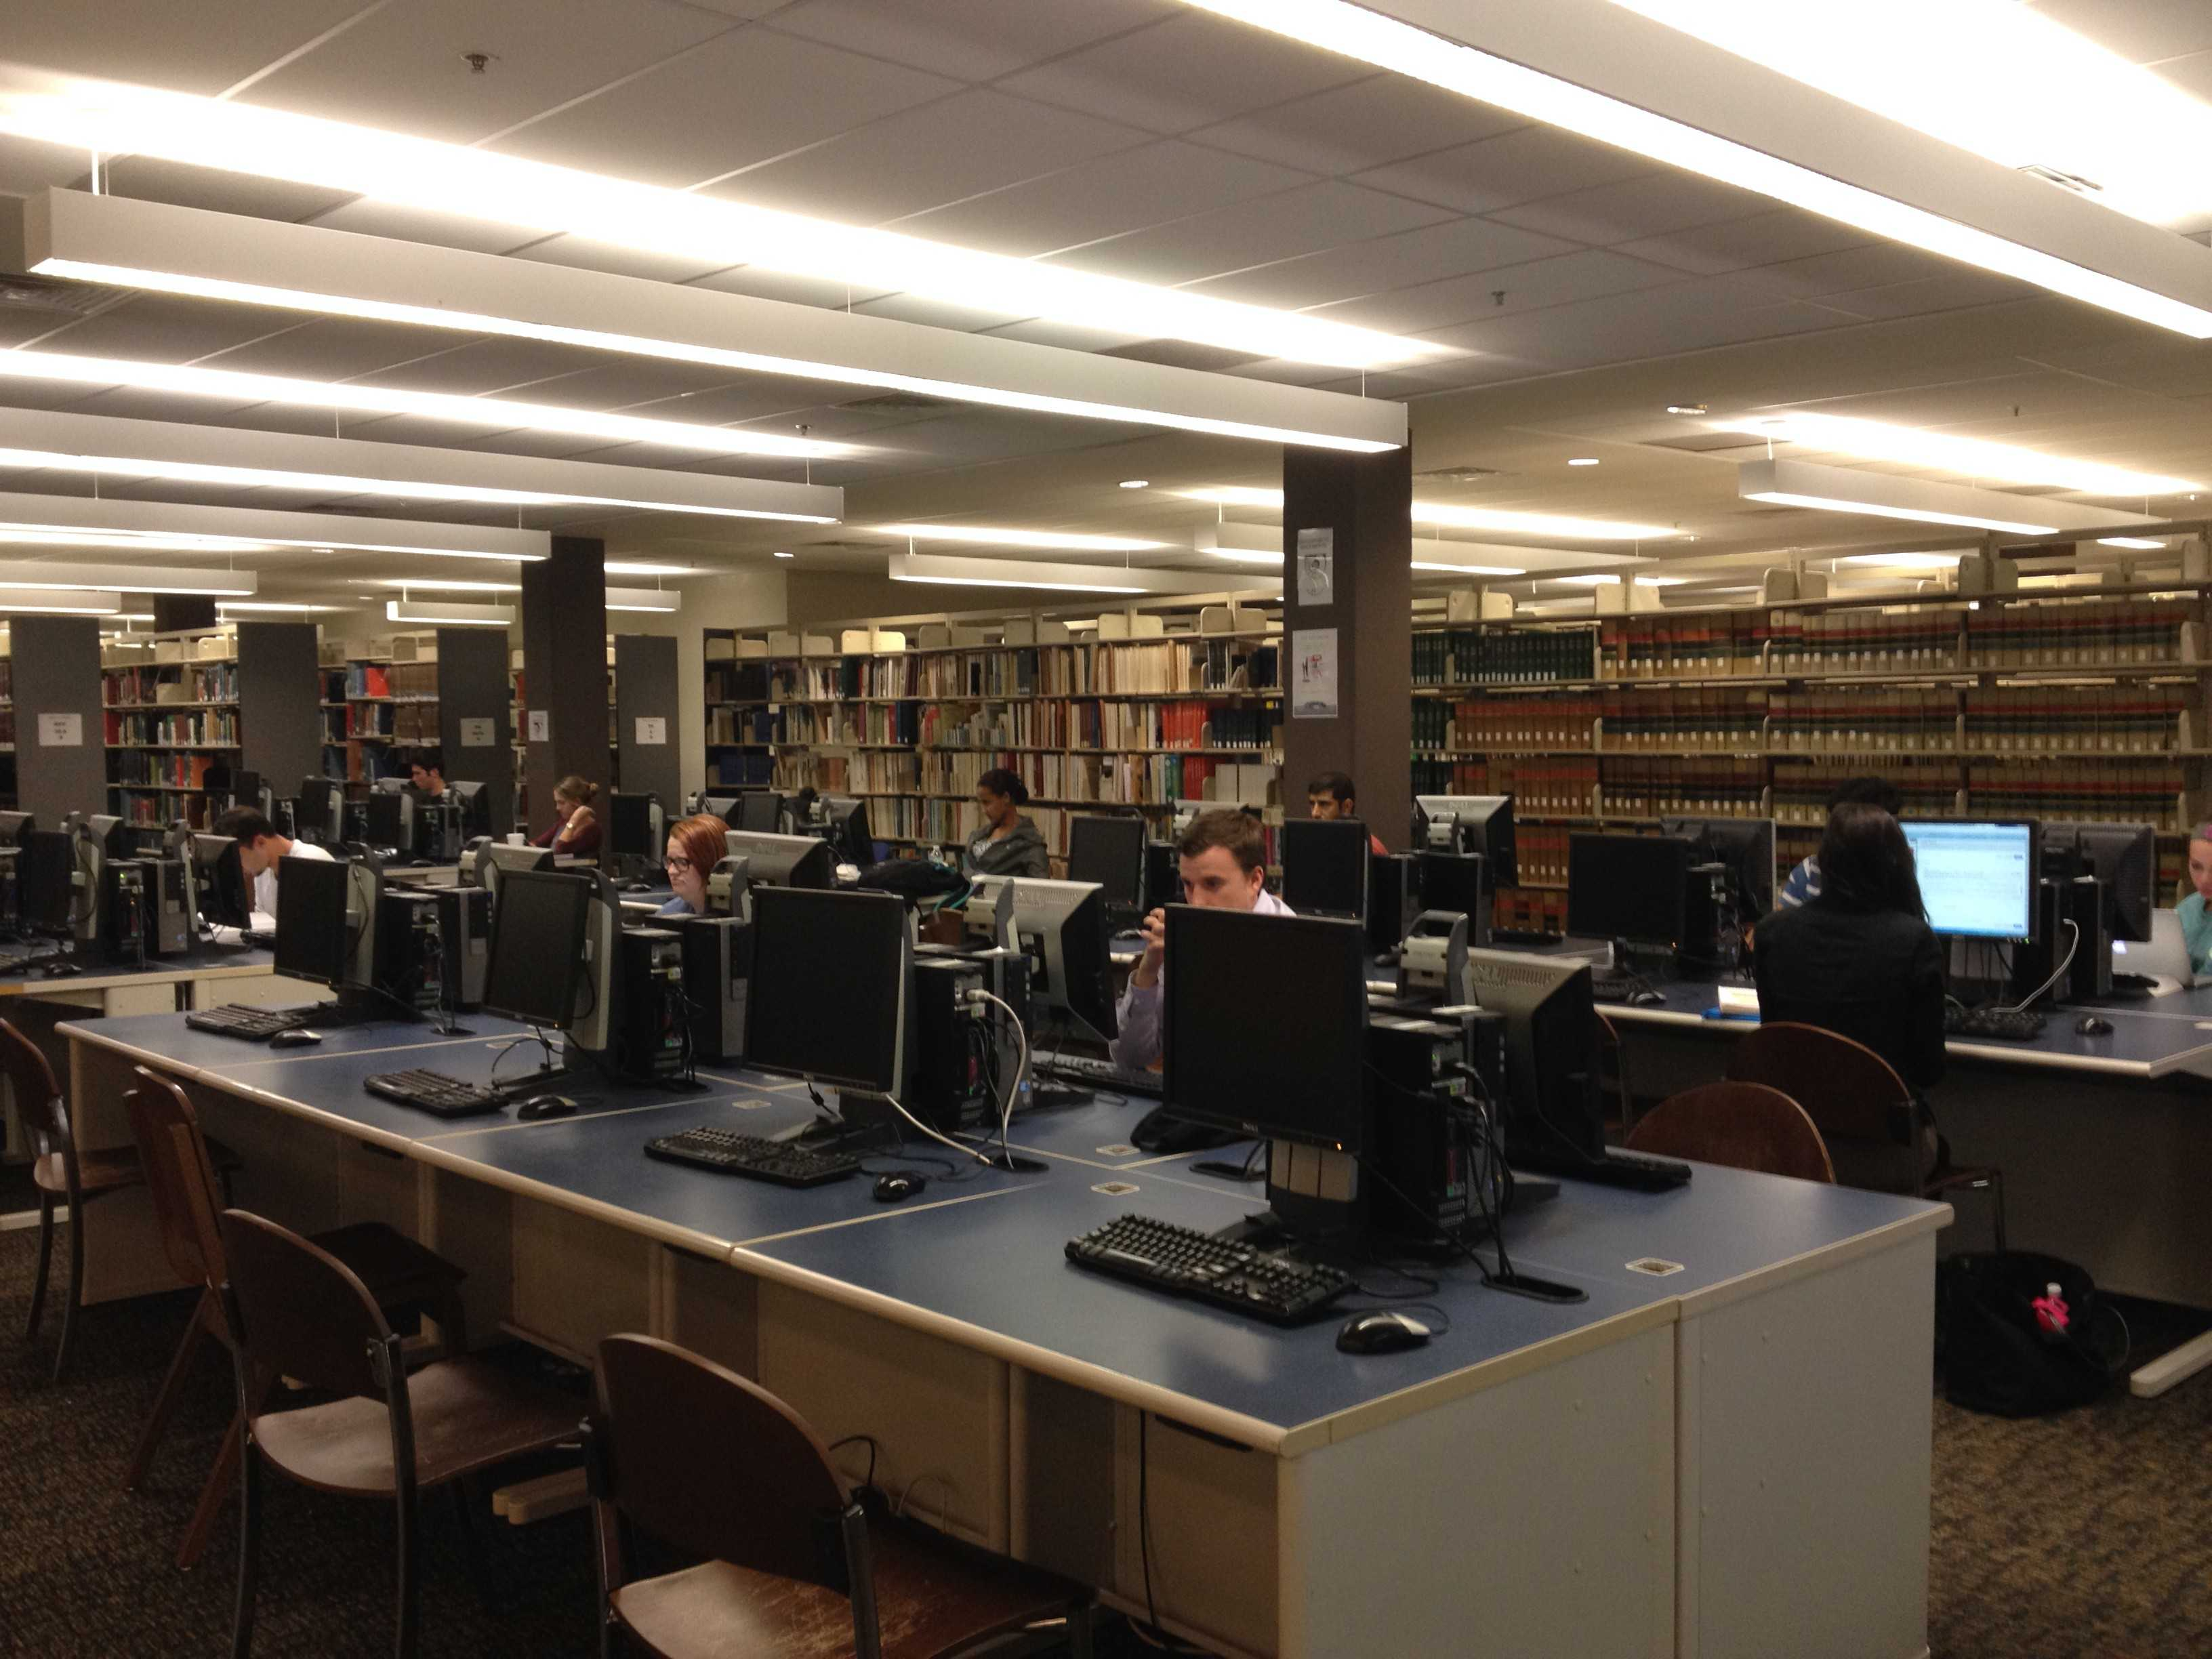 Library To Stay Open 24 Hours As Trial Unf Spinnaker